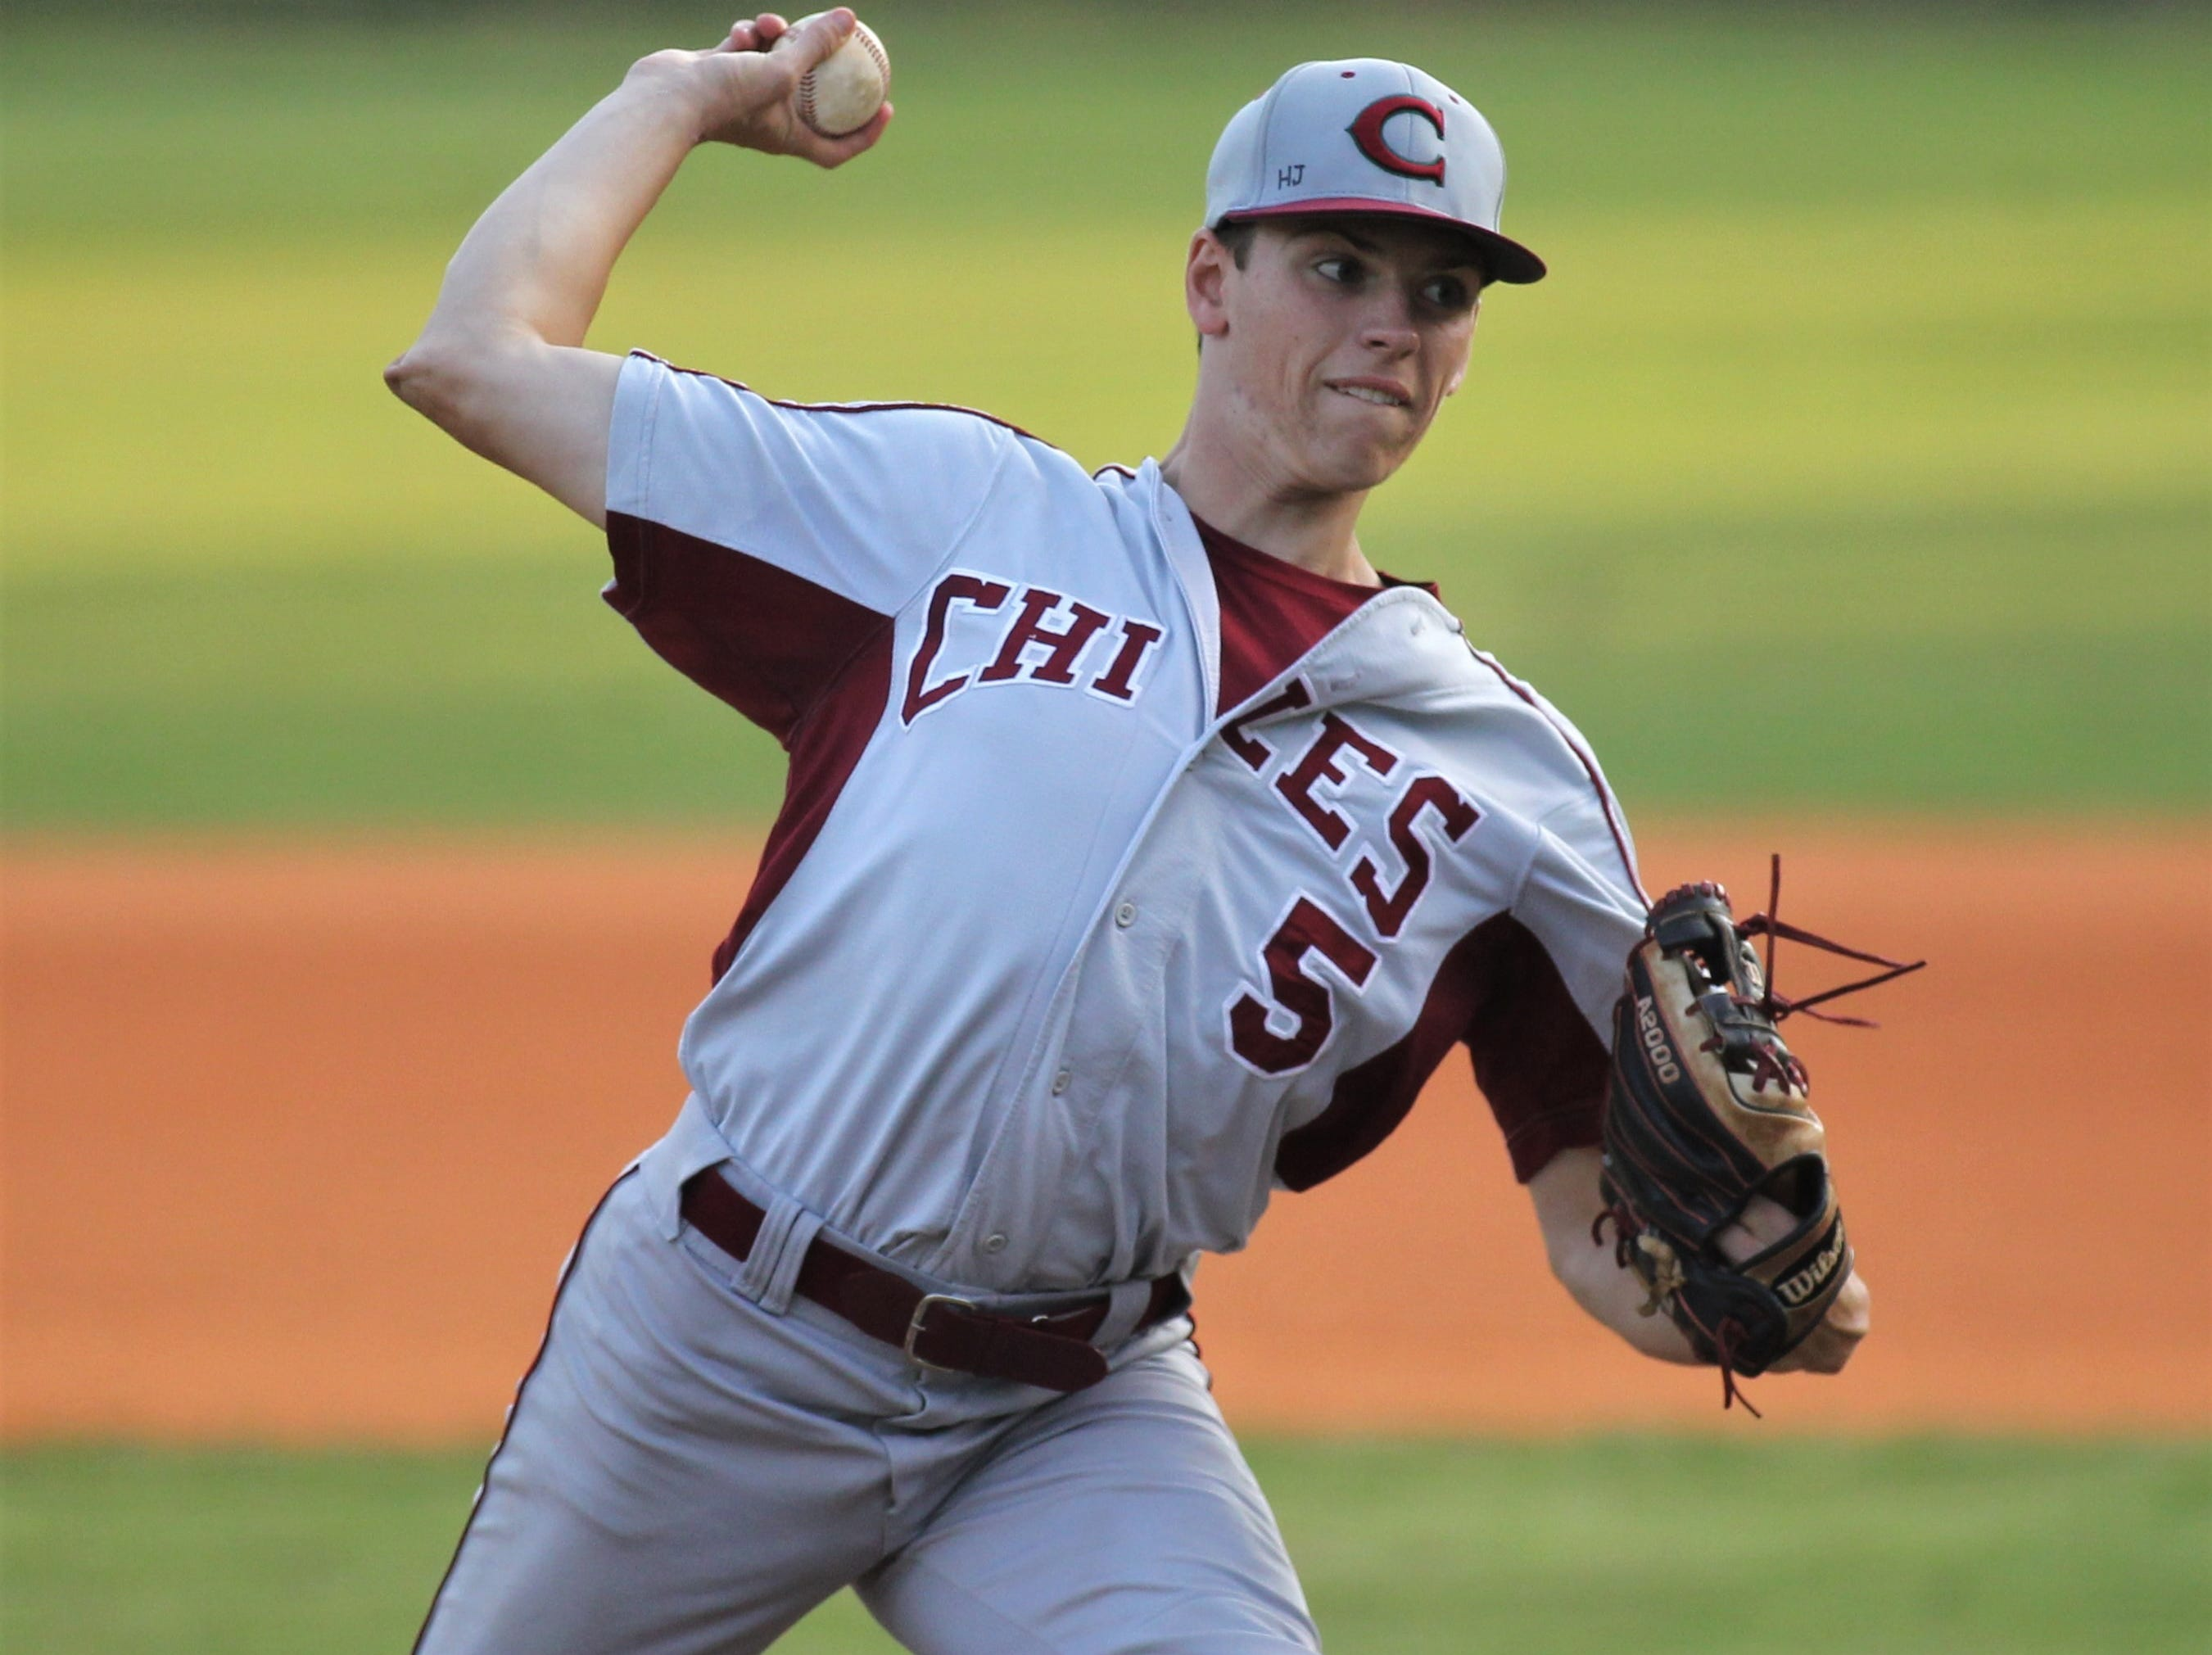 Chiles senior Ben Gurley pitches Lincoln baseball beat Chiles 5-4  in 10 innings during a District 2-8A championship game on Thursday, May 9, 2019.